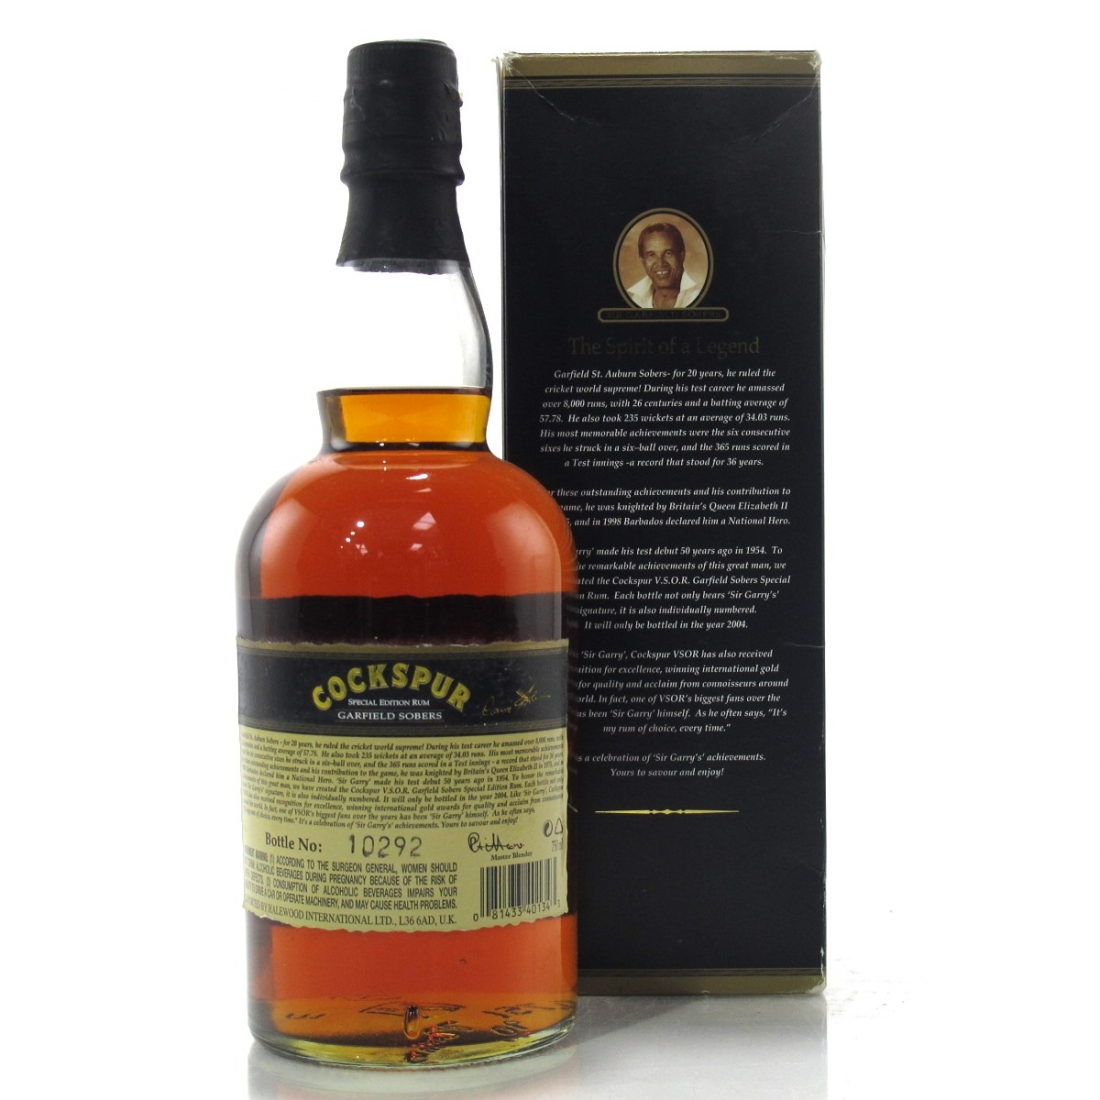 Cockspur VSOR Garfield Sobers Special Edition Rum 75cl / US Import